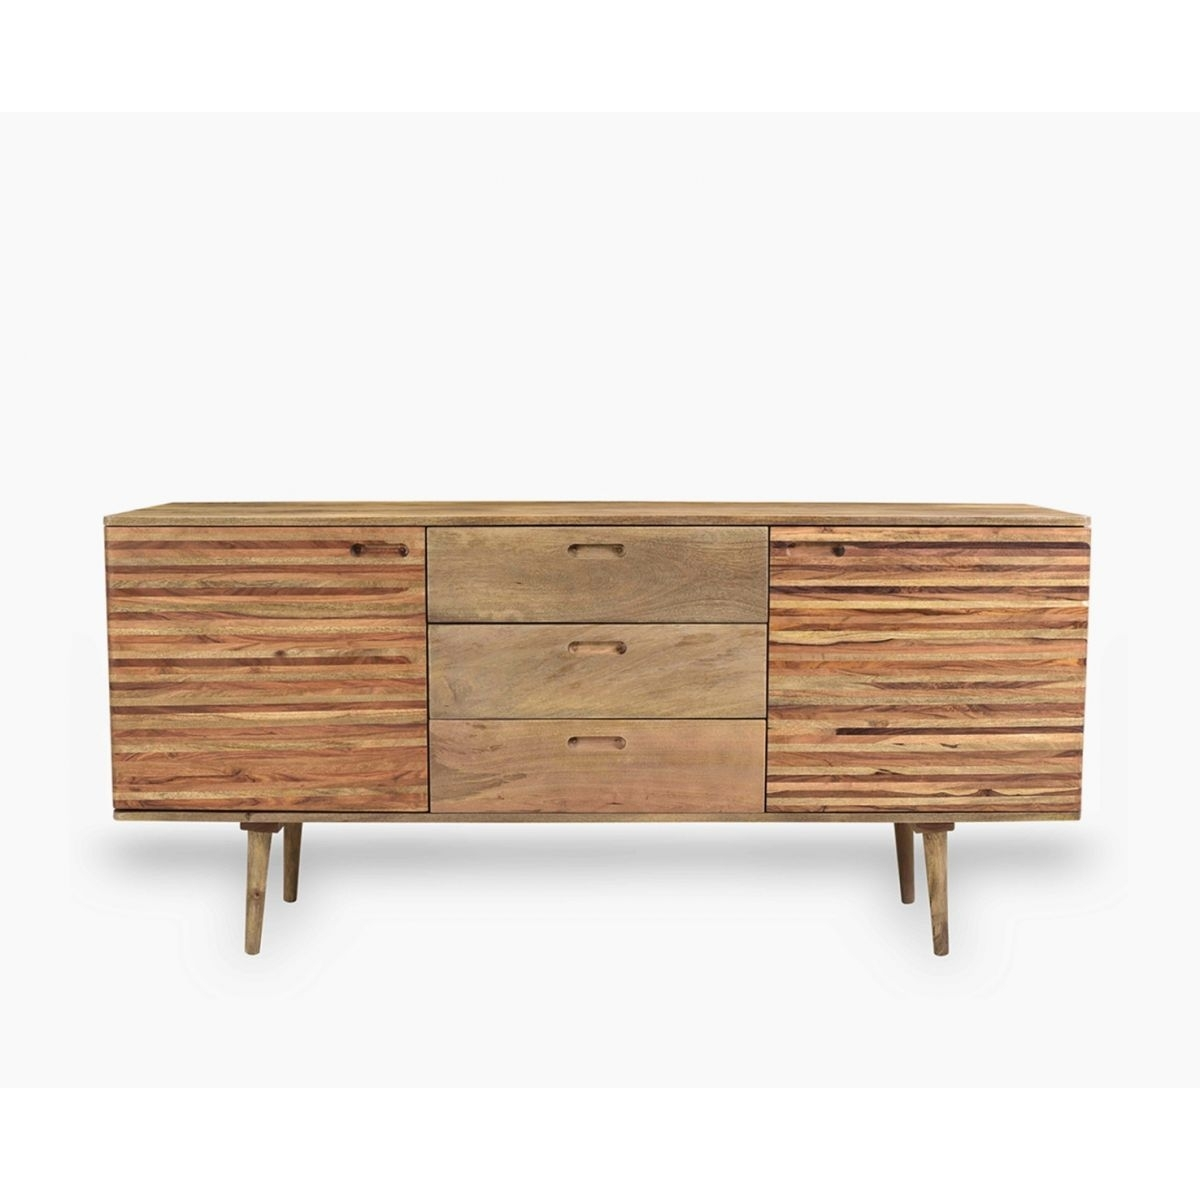 Mango & Acacia Wood Sideboard | Sustainable Rossa Sideboard | Vênoor within Natural Mango Wood Finish Sideboards (Image 14 of 30)